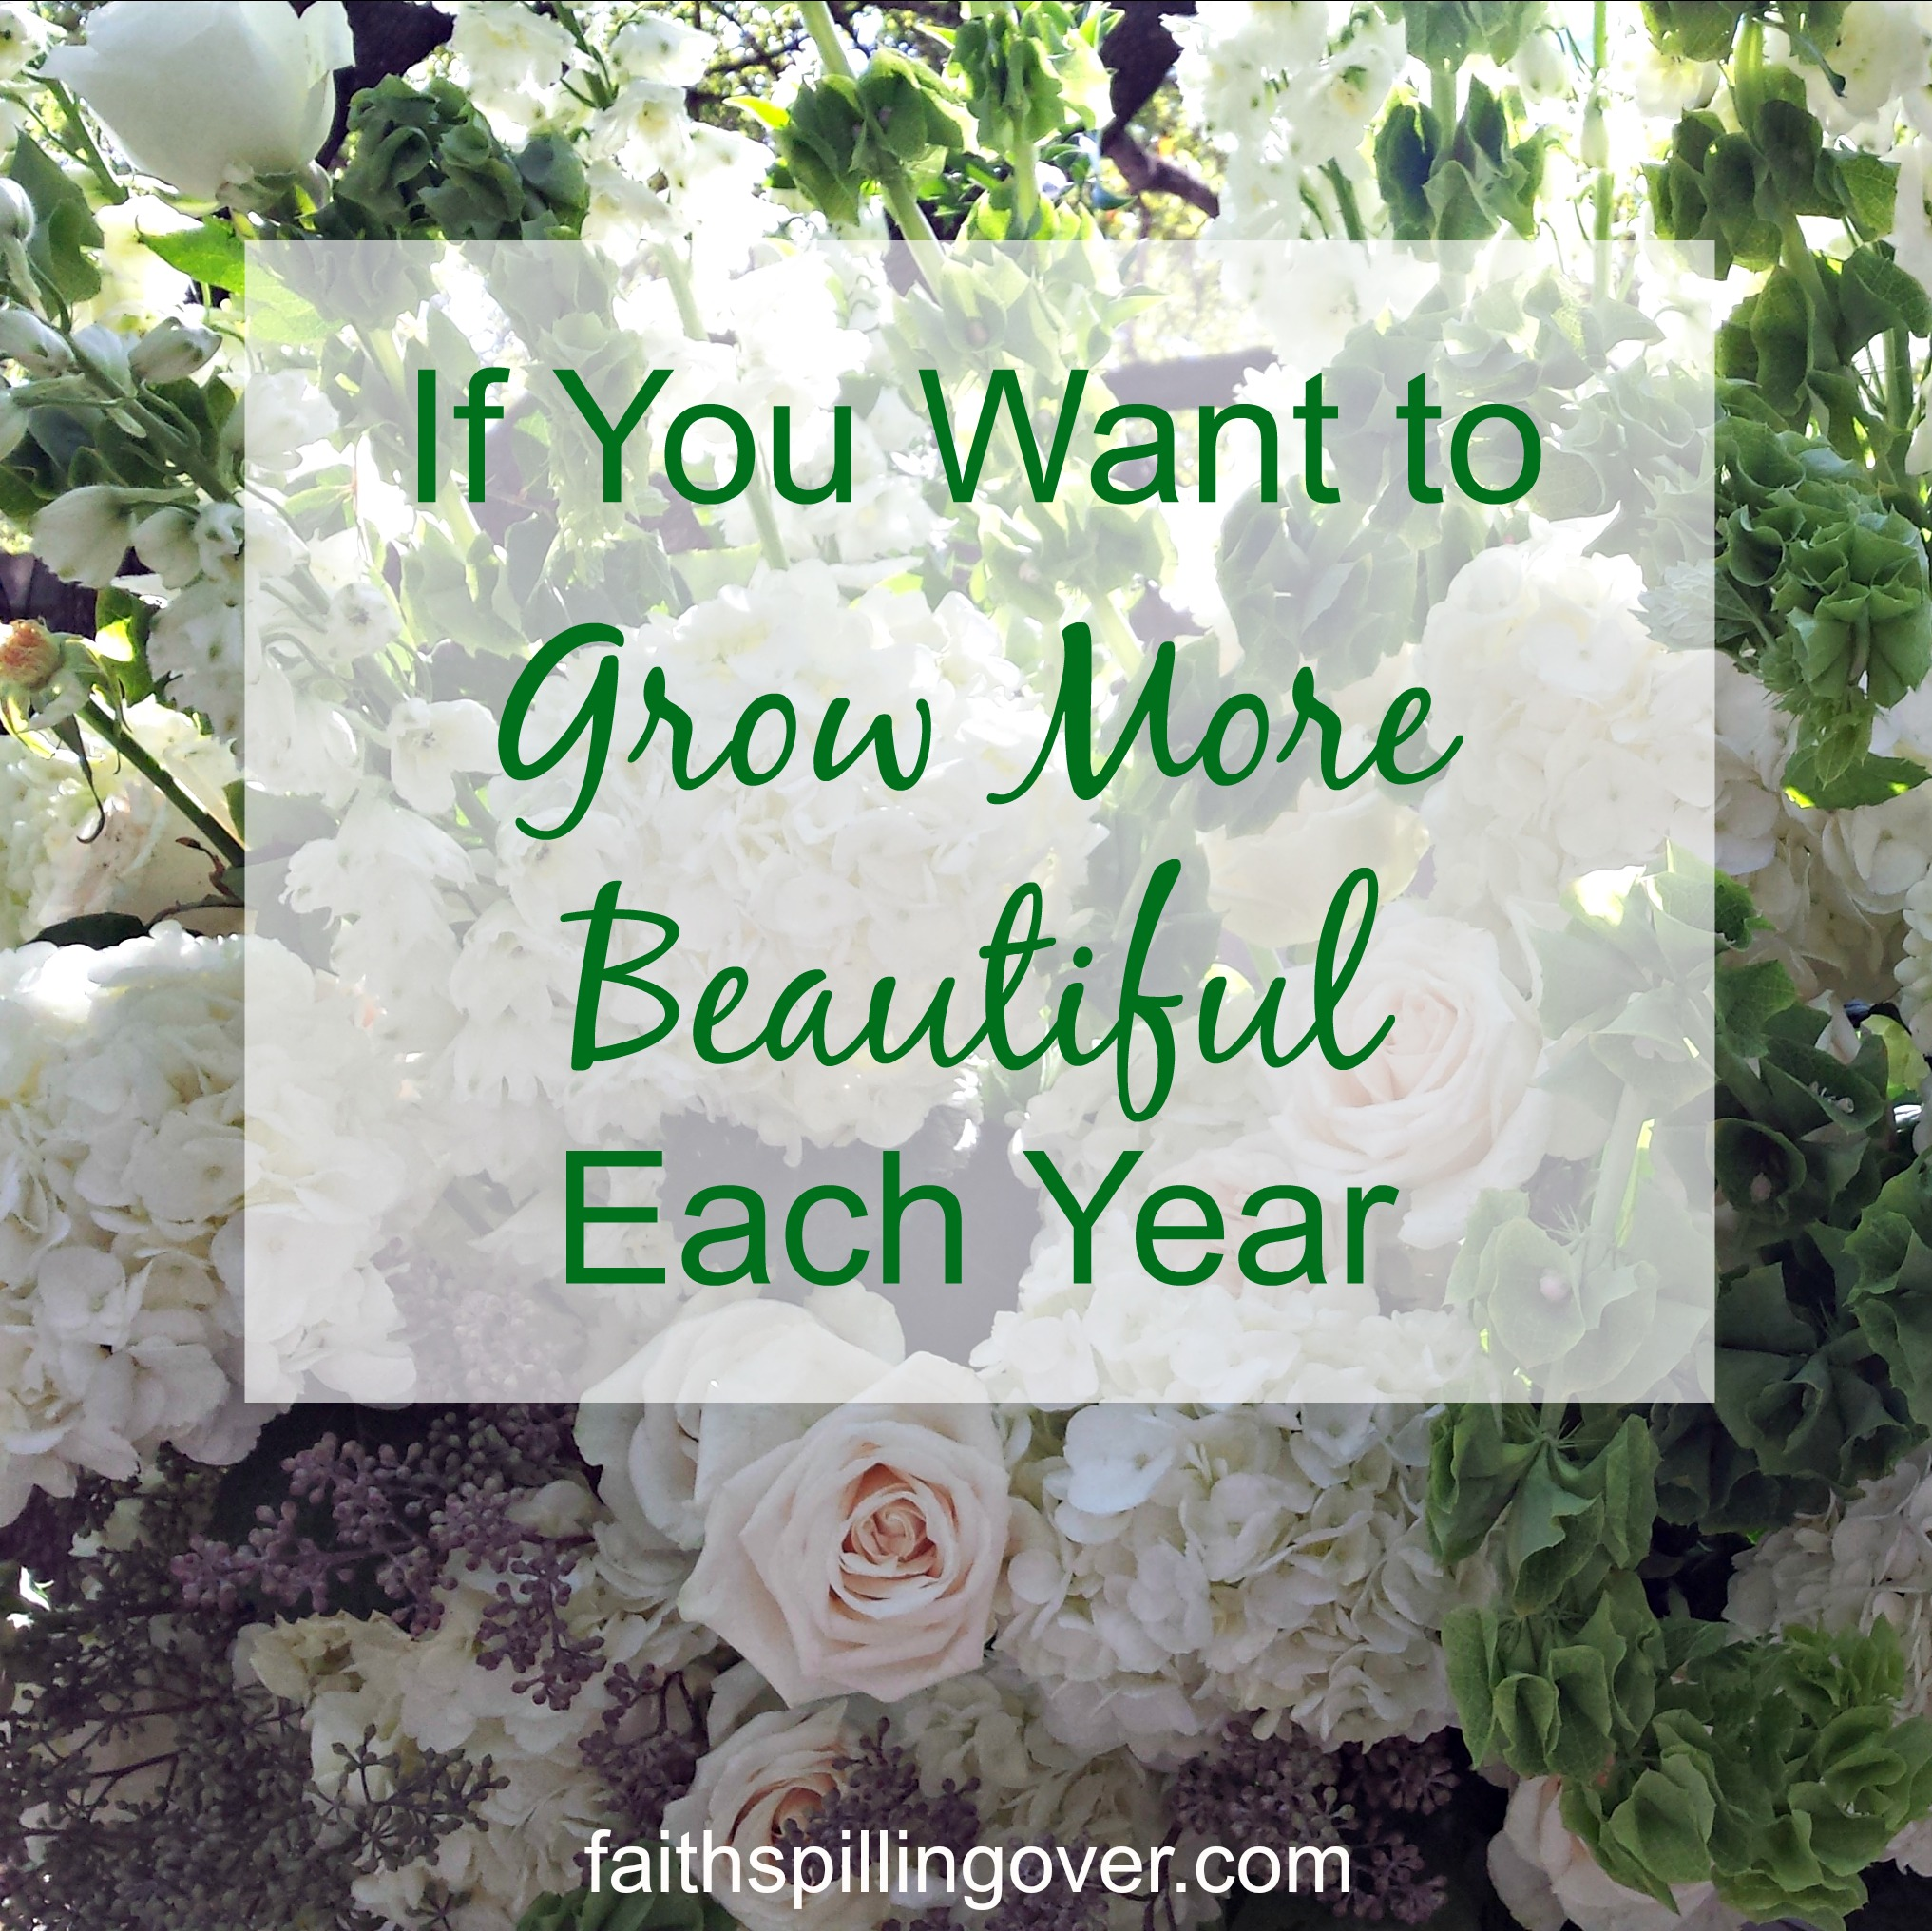 Grow More Beautiful